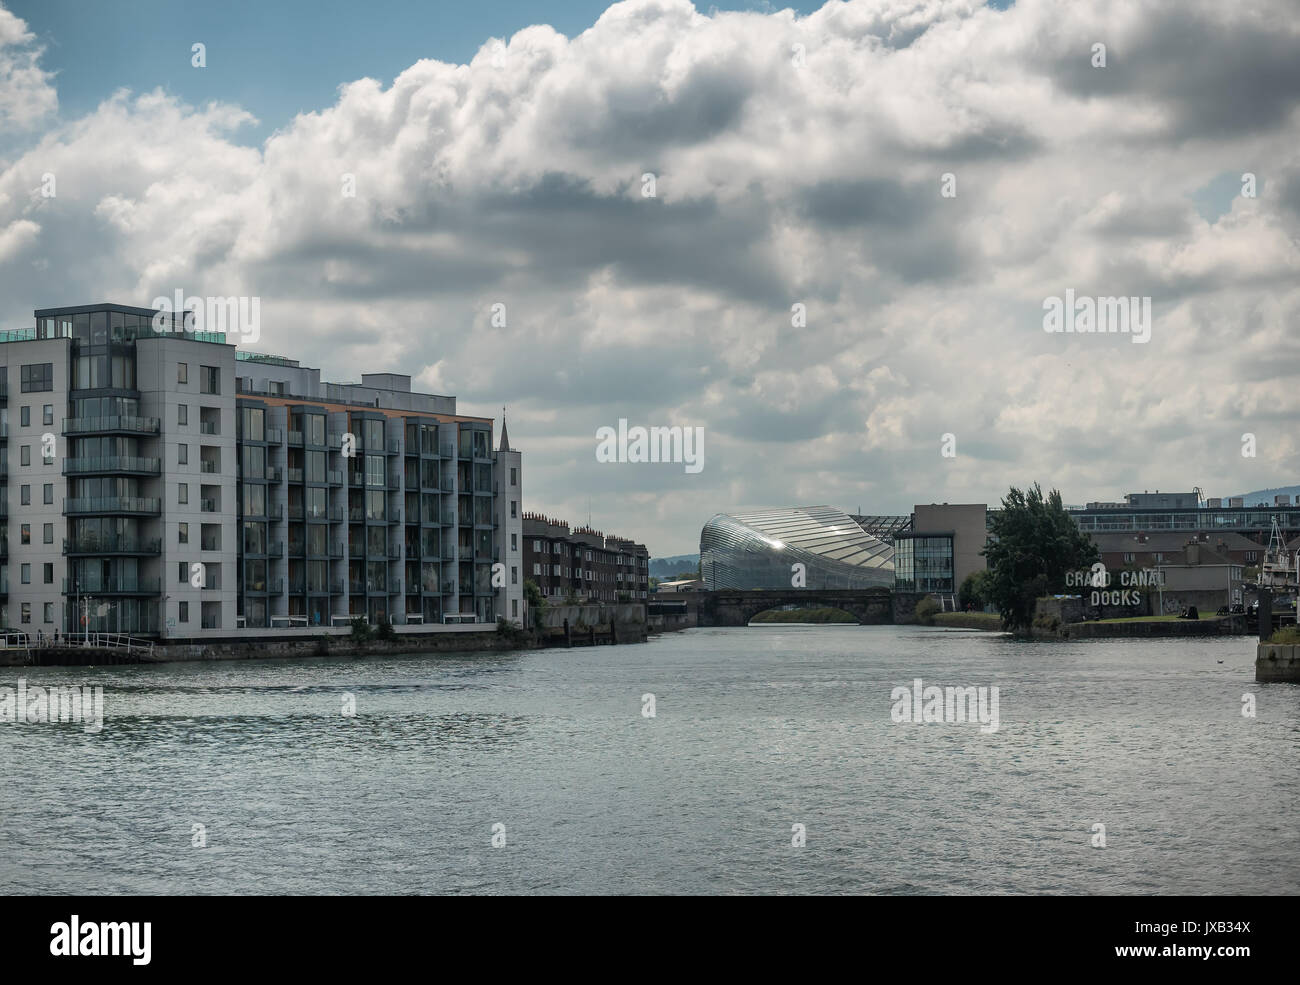 Docklands at the river Liffey in Dublin, Ireland - Stock Image